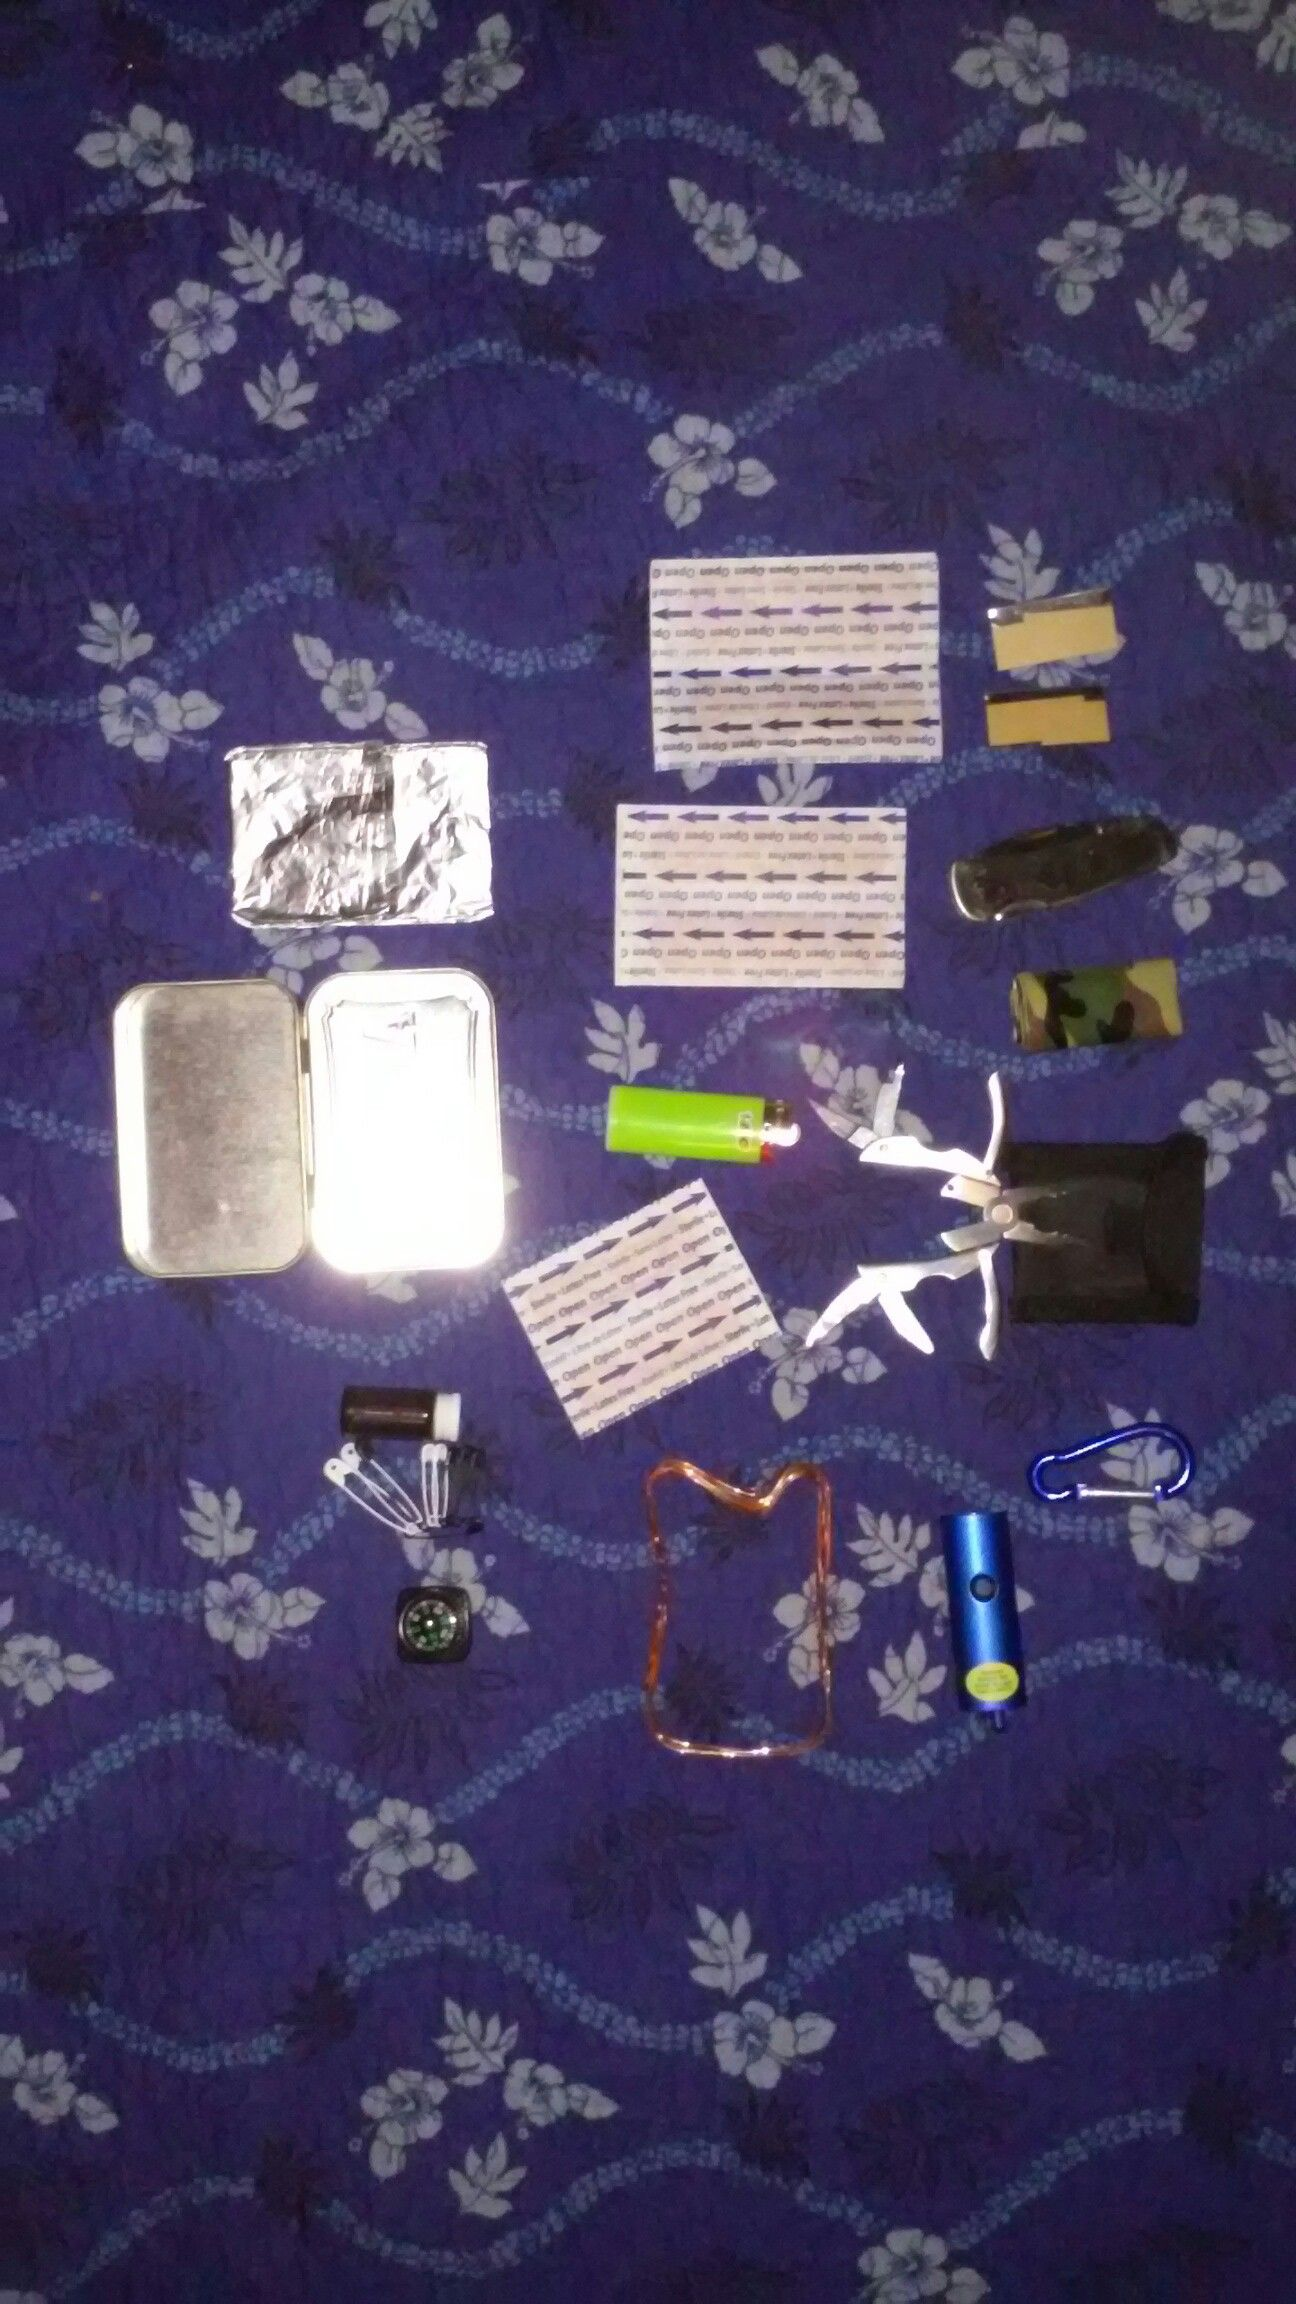 Partial contents of altoids survival kit I made for my dad before wrapping it in camo 550.